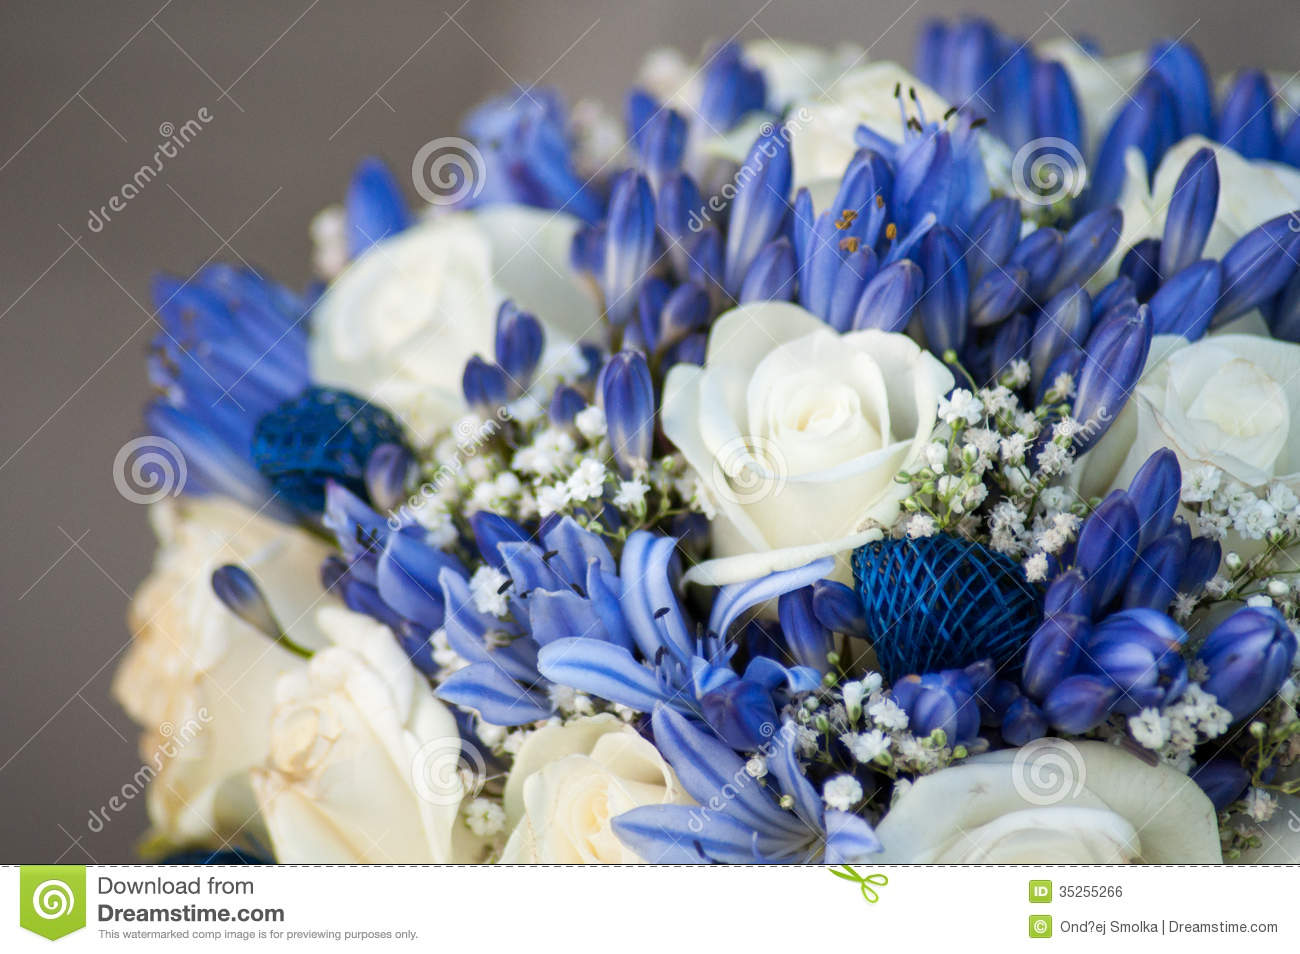 White and blue flower bouquet image collections flower wallpaper hd white and blue flower arrangements gallery flower decoration ideas modern white and blue flower arrangements ideas mightylinksfo